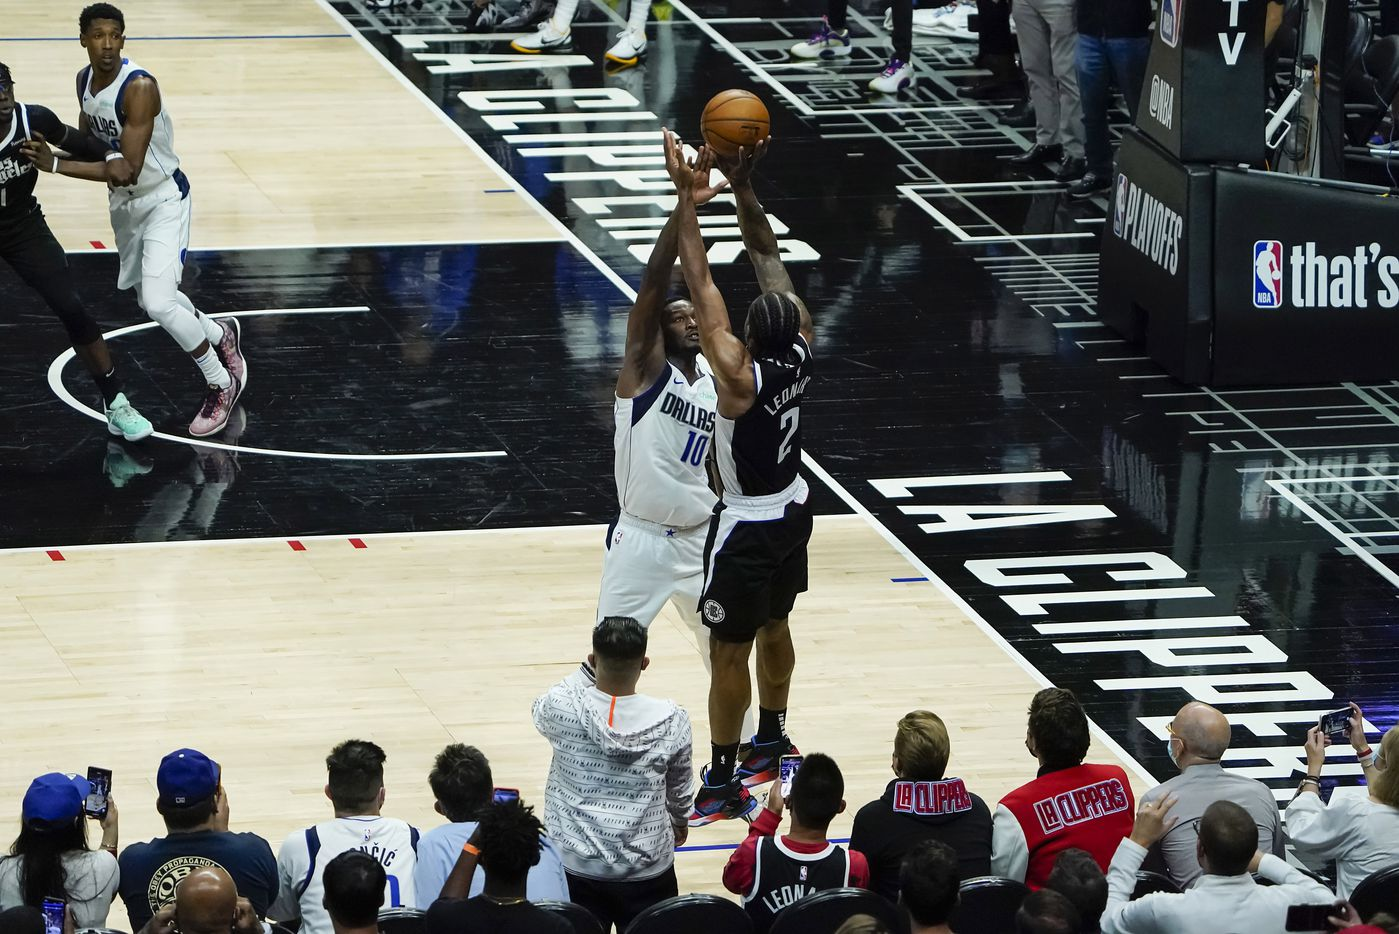 LA Clippers forward Kawhi Leonard (2) misses a 3-point attempt over Dallas Mavericks forward Dorian Finney-Smith (10) with 4.9 seconds left during the fourth quarter of an NBA playoff basketball game at the Staples Center on Wednesday, June 2, 2021, in Los Angeles. The Mavericks won the game 105-100. (Smiley N. Pool/The Dallas Morning News)